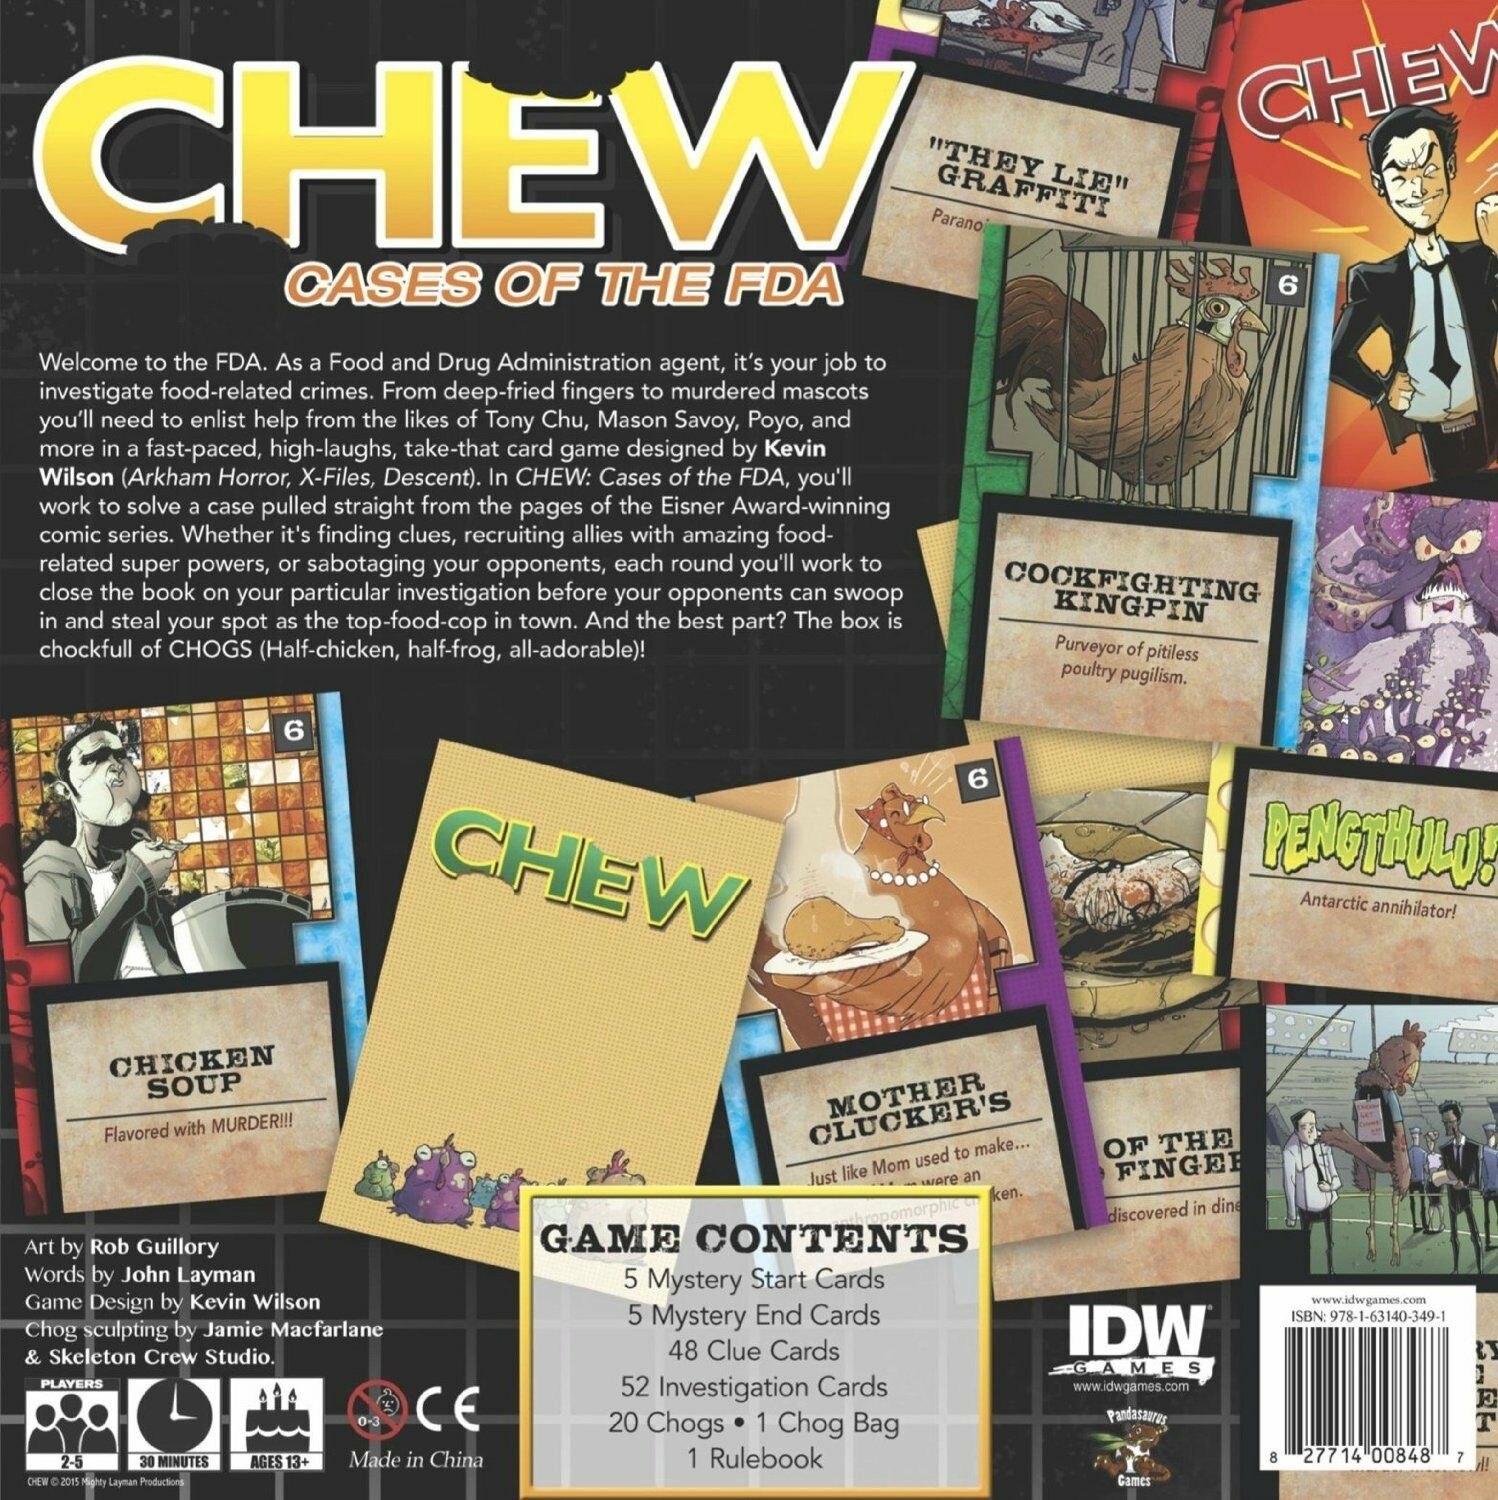 CHEW of The FDA Card Card Card Game - New 0525a9